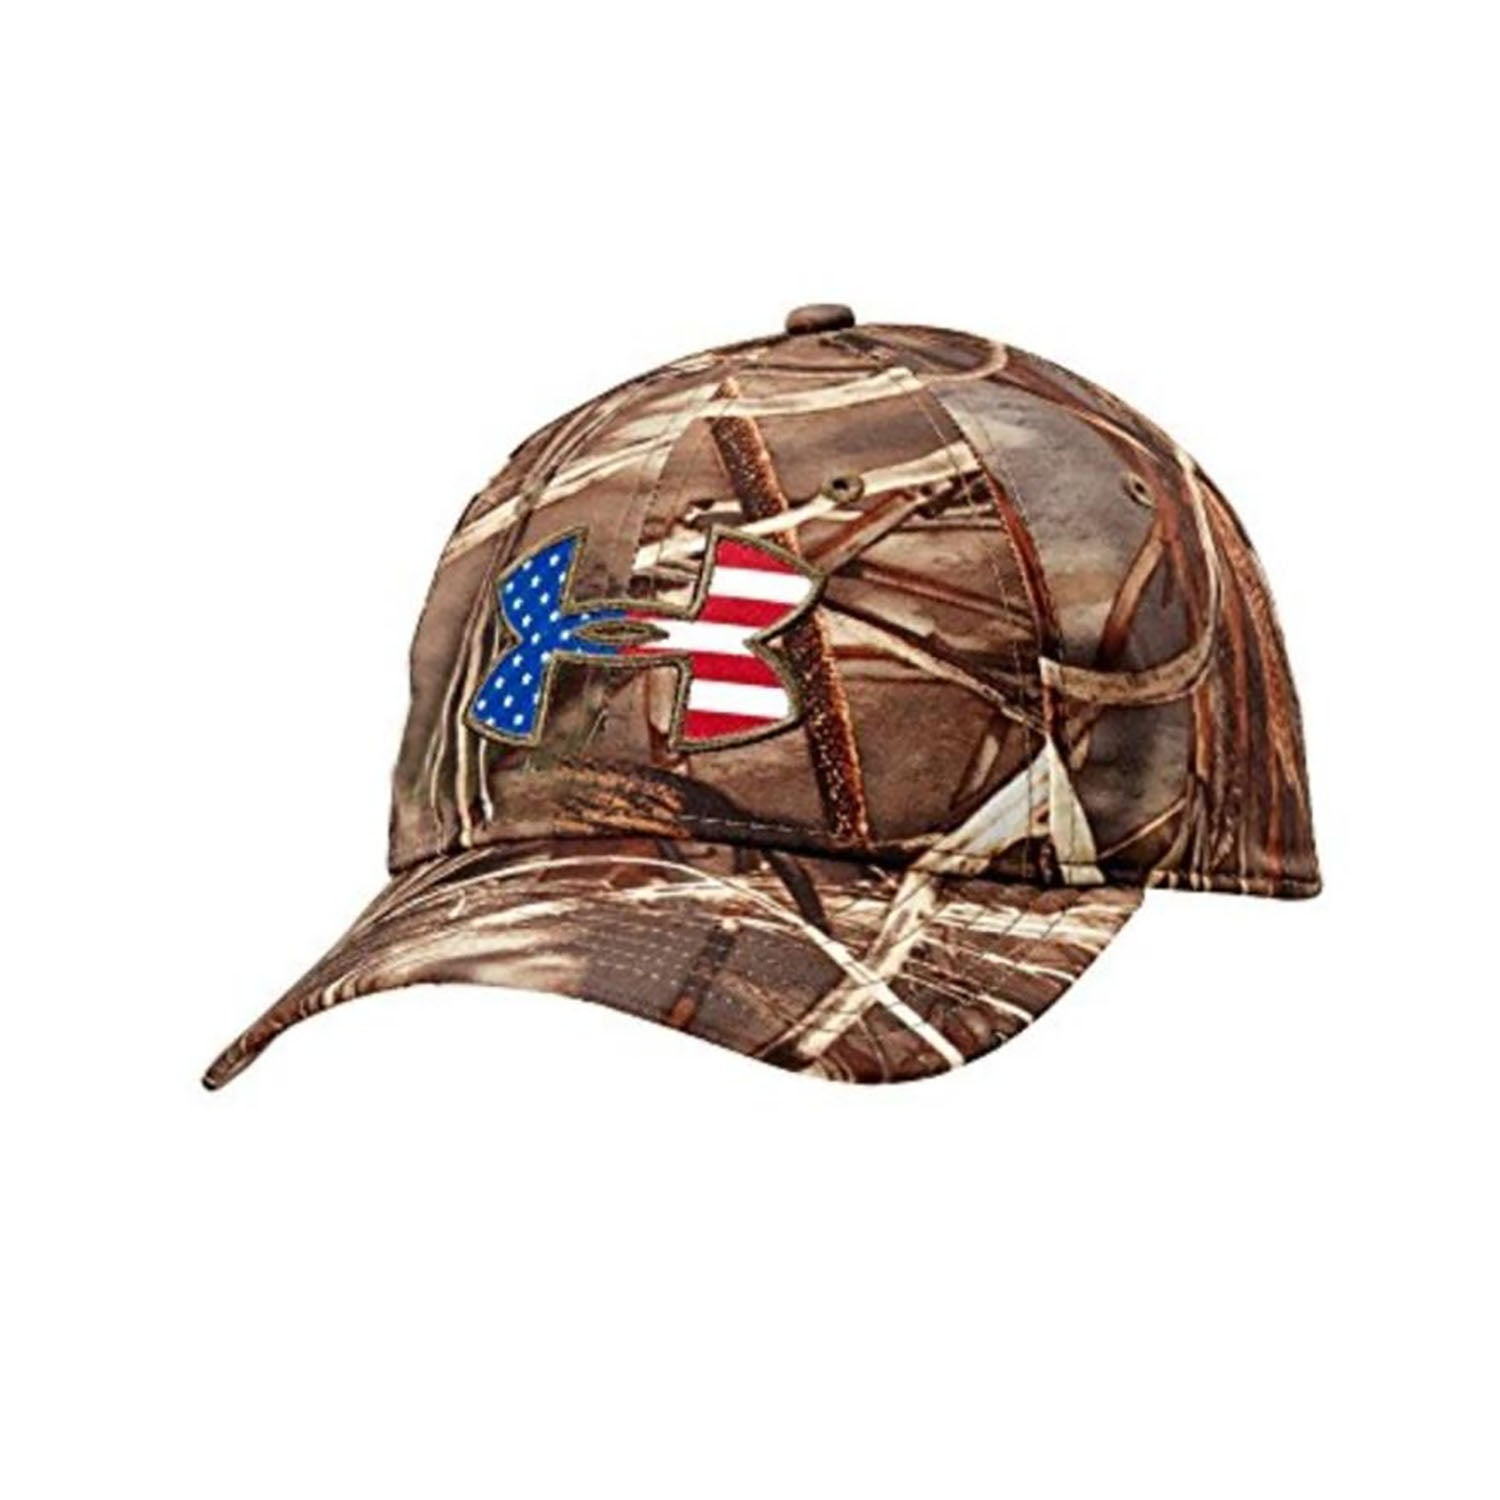 Under Armour Big Flag Logo Camo Hat - HYDRA Tactical d4664da9f36